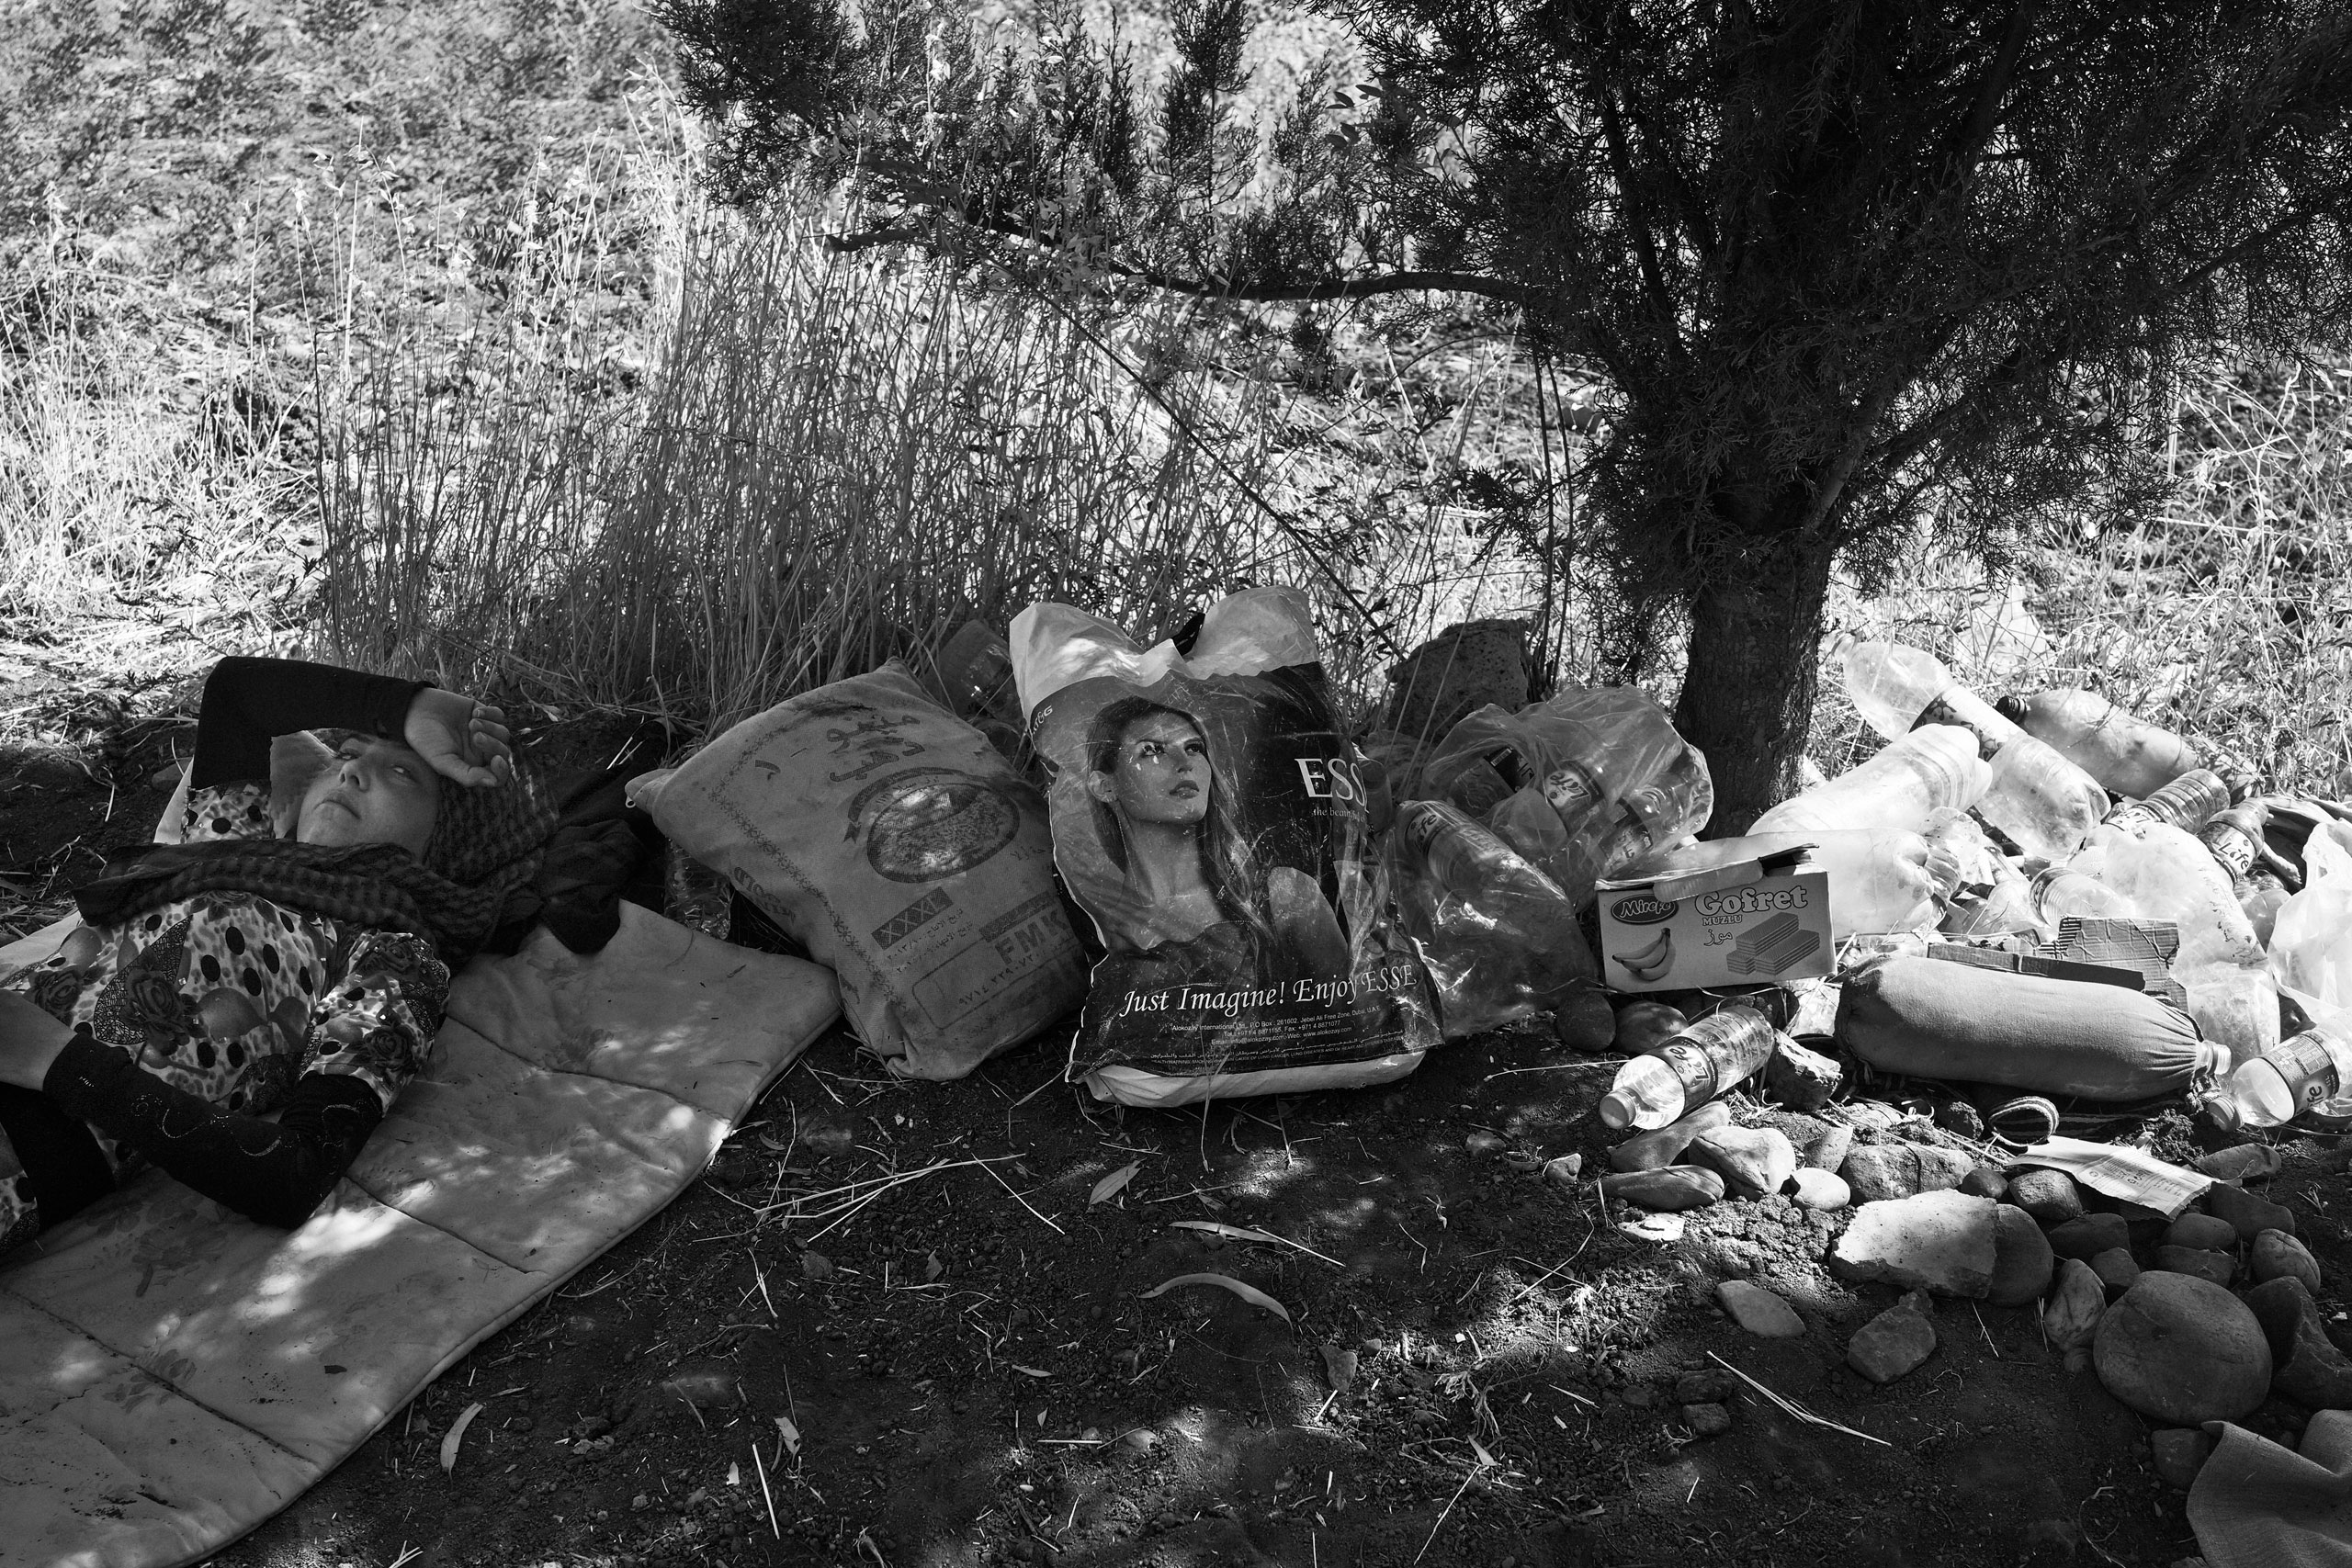 Nada, a 12-year-old Yezidi girl from Sinjar, rests under a tree next to her family's belongings shortly after crossing into Kurdish-controlled Dohuk Province. Fishkhabur, Iraq. Aug. 11, 2014.